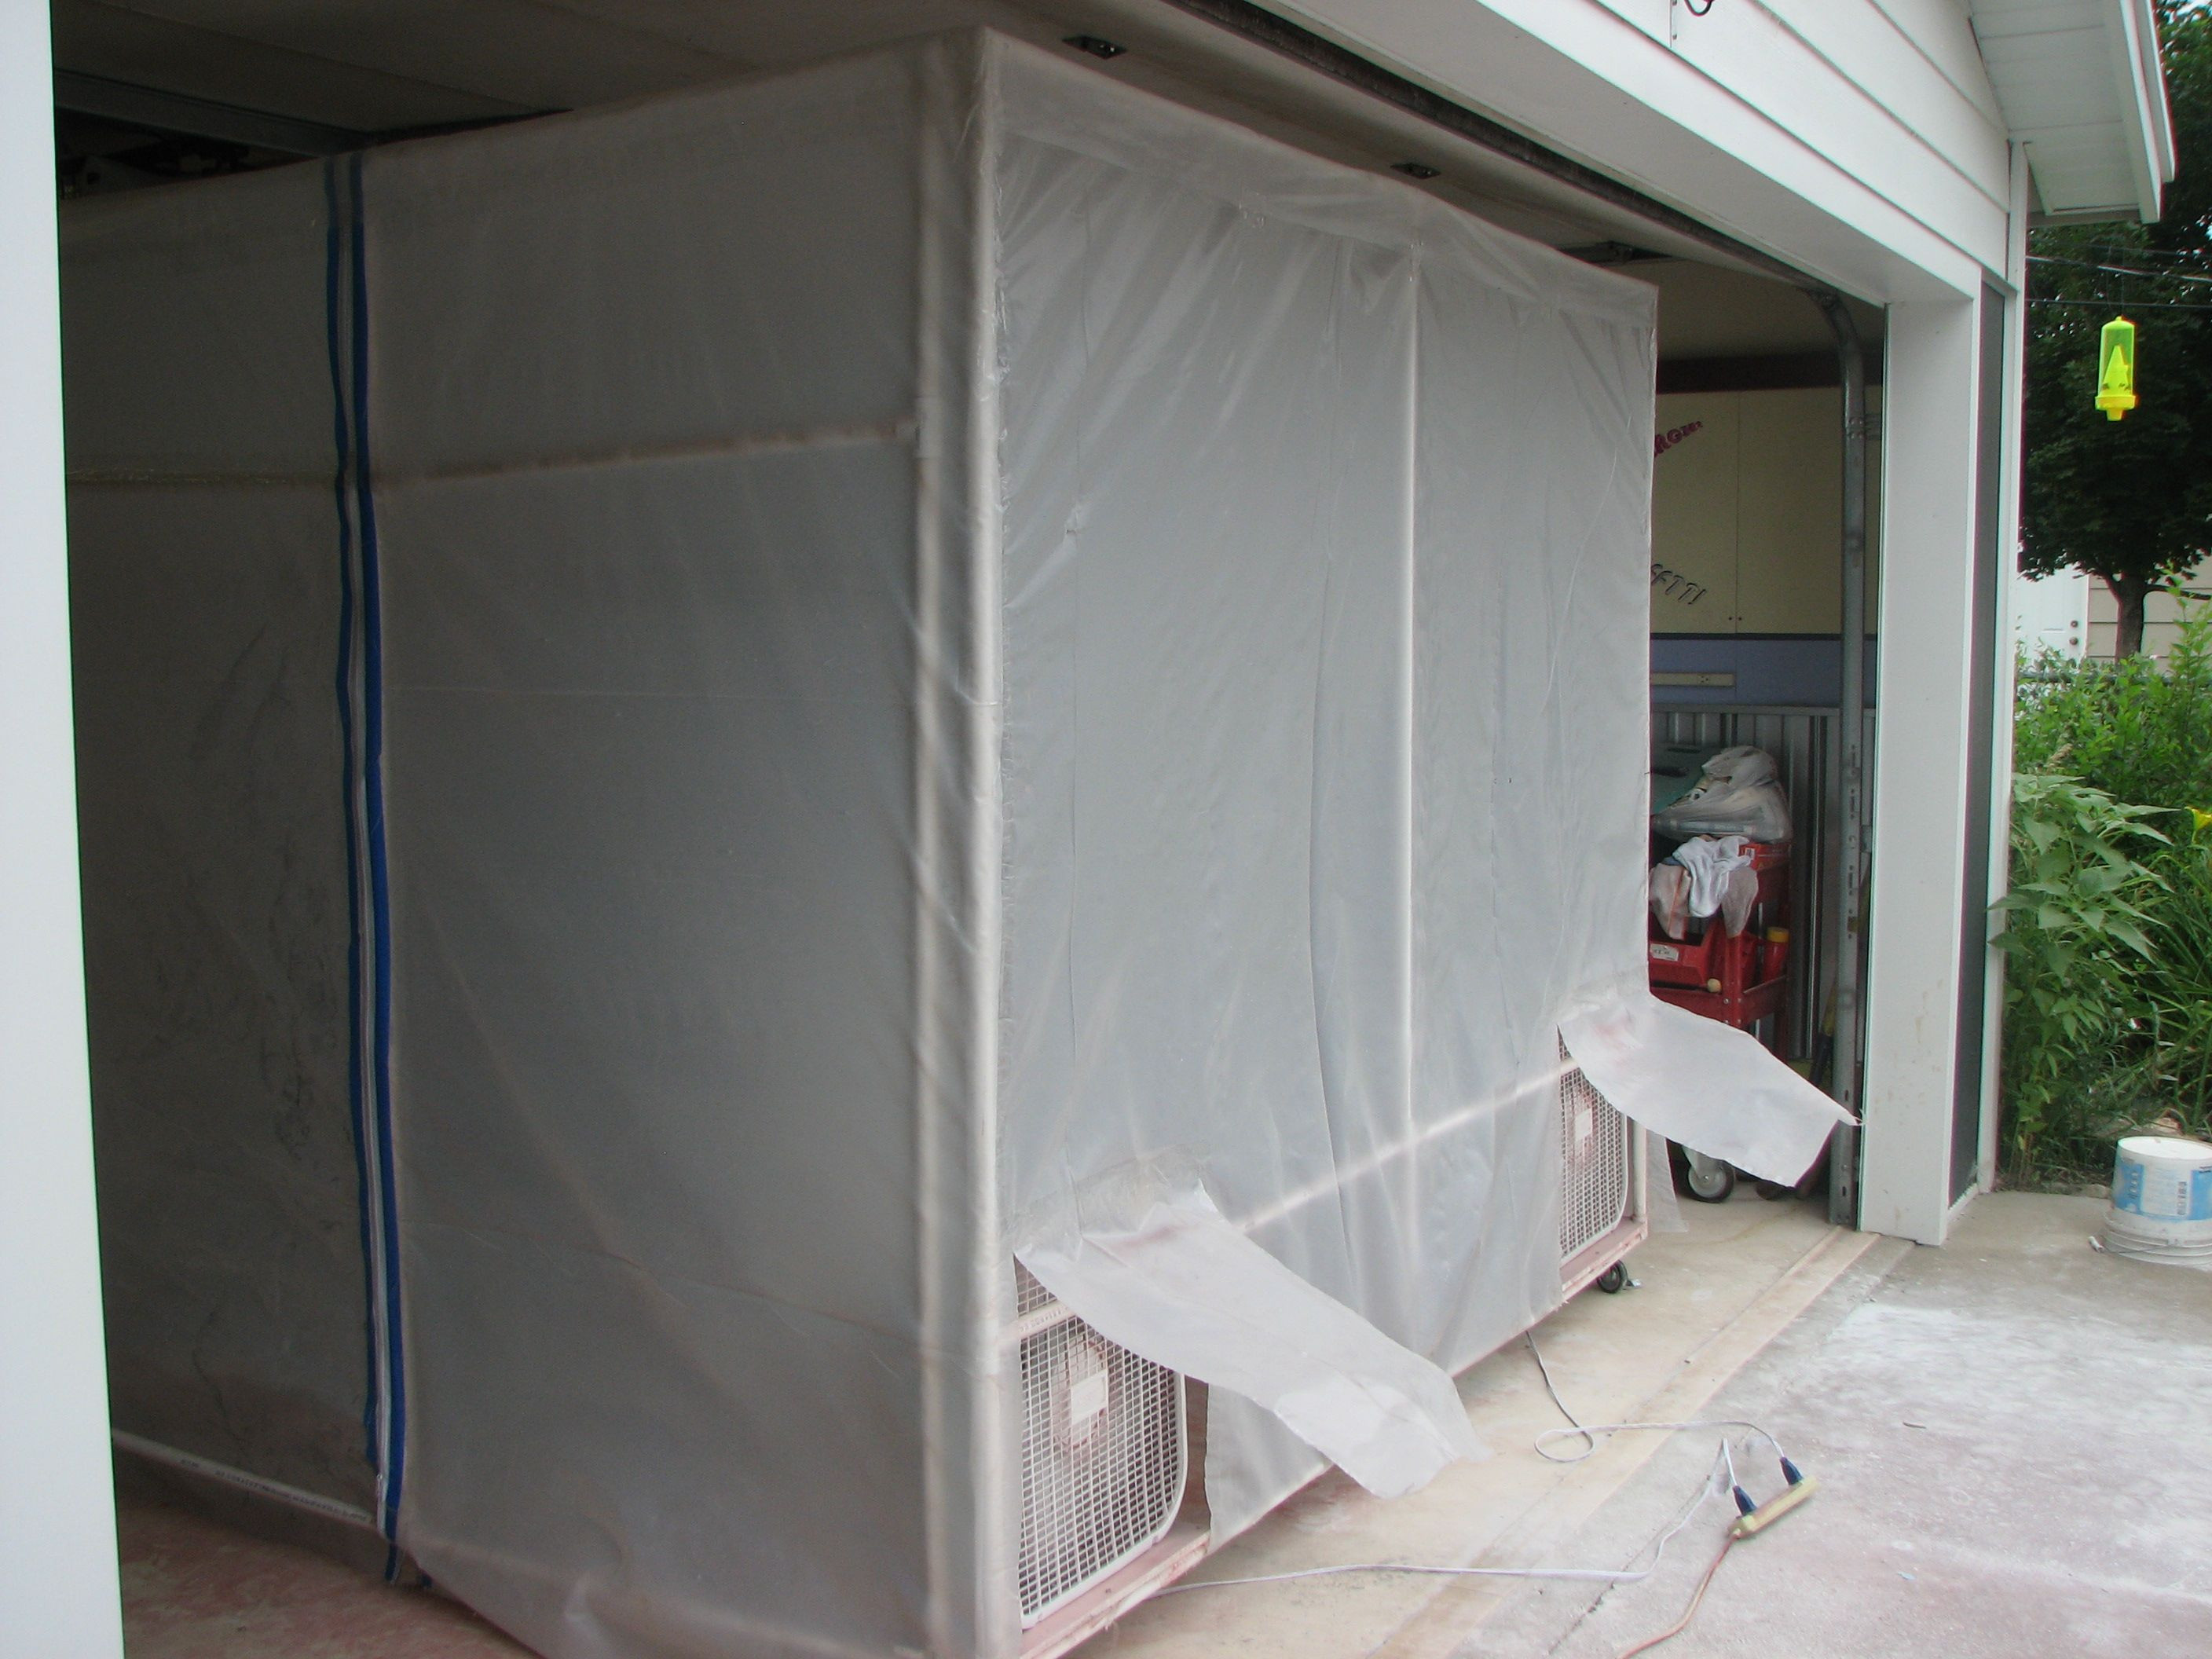 Best ideas about DIY Portable Paint Booth . Save or Pin portable paint booth PVC pipe clear plastic 9 furnace Now.